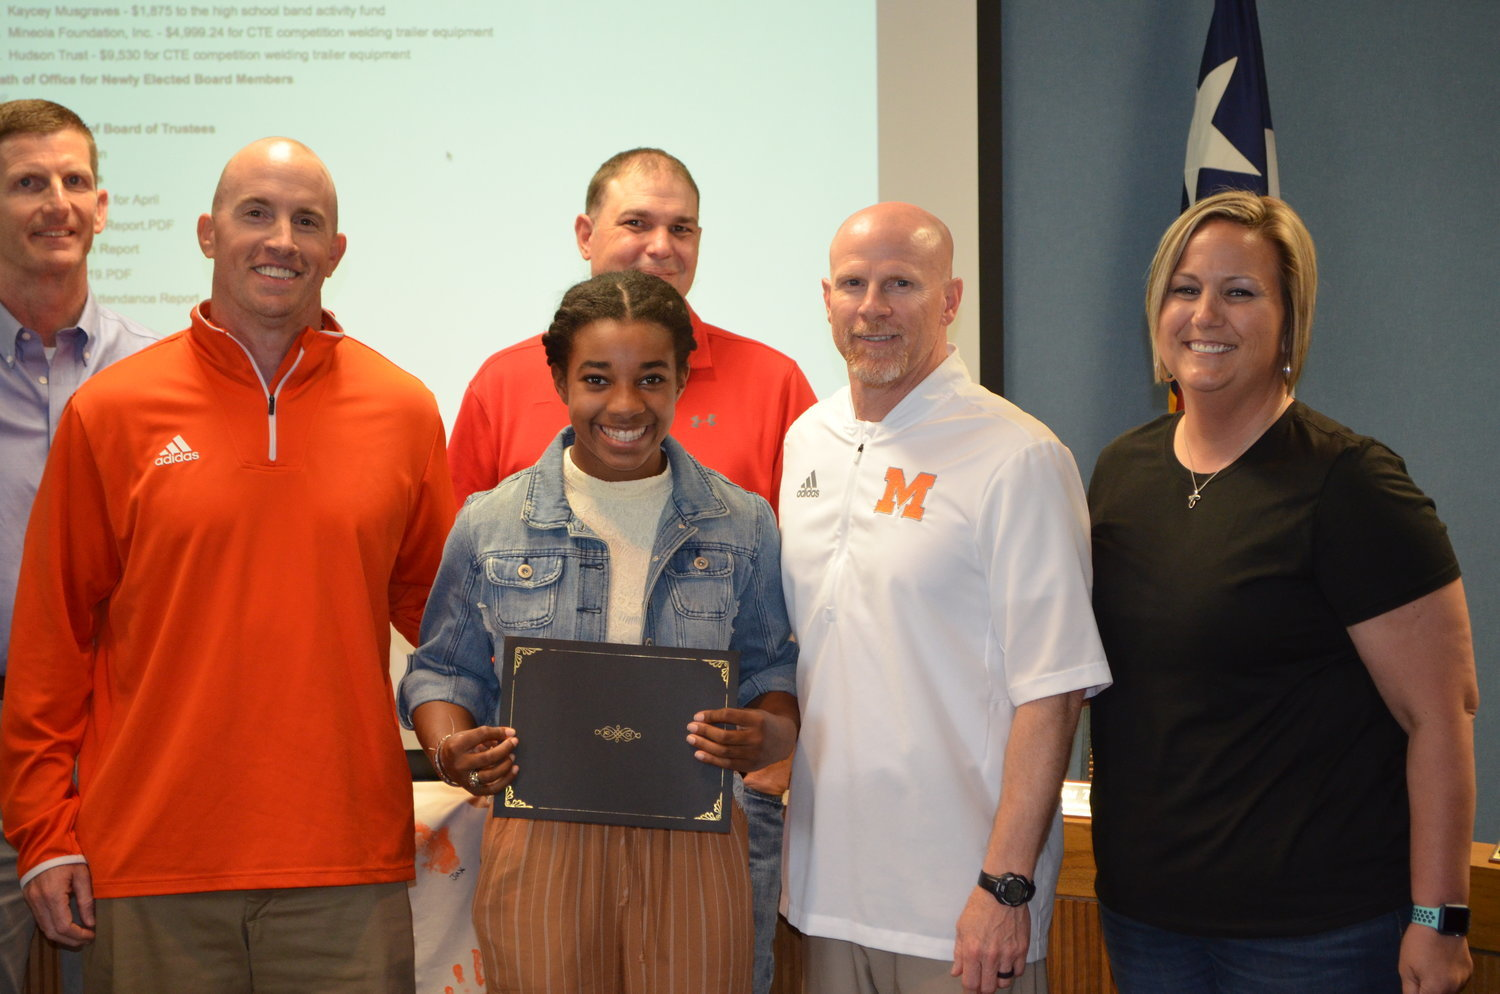 Abeni Kratzmeyer was recognized at Monday night's MISD school board meeting for her accomplishment in repeating as class 3A state pole vault champion. Her coaches described her as a dedicated athlete as well as fine student and an exceptional person. From left are school Trustee Kyle Gully, athletic director Luke Blackwell, Kratzmeyer, Trustee Daniel Louderman, coach Bill Self, and coach Kerry Van Cleave.